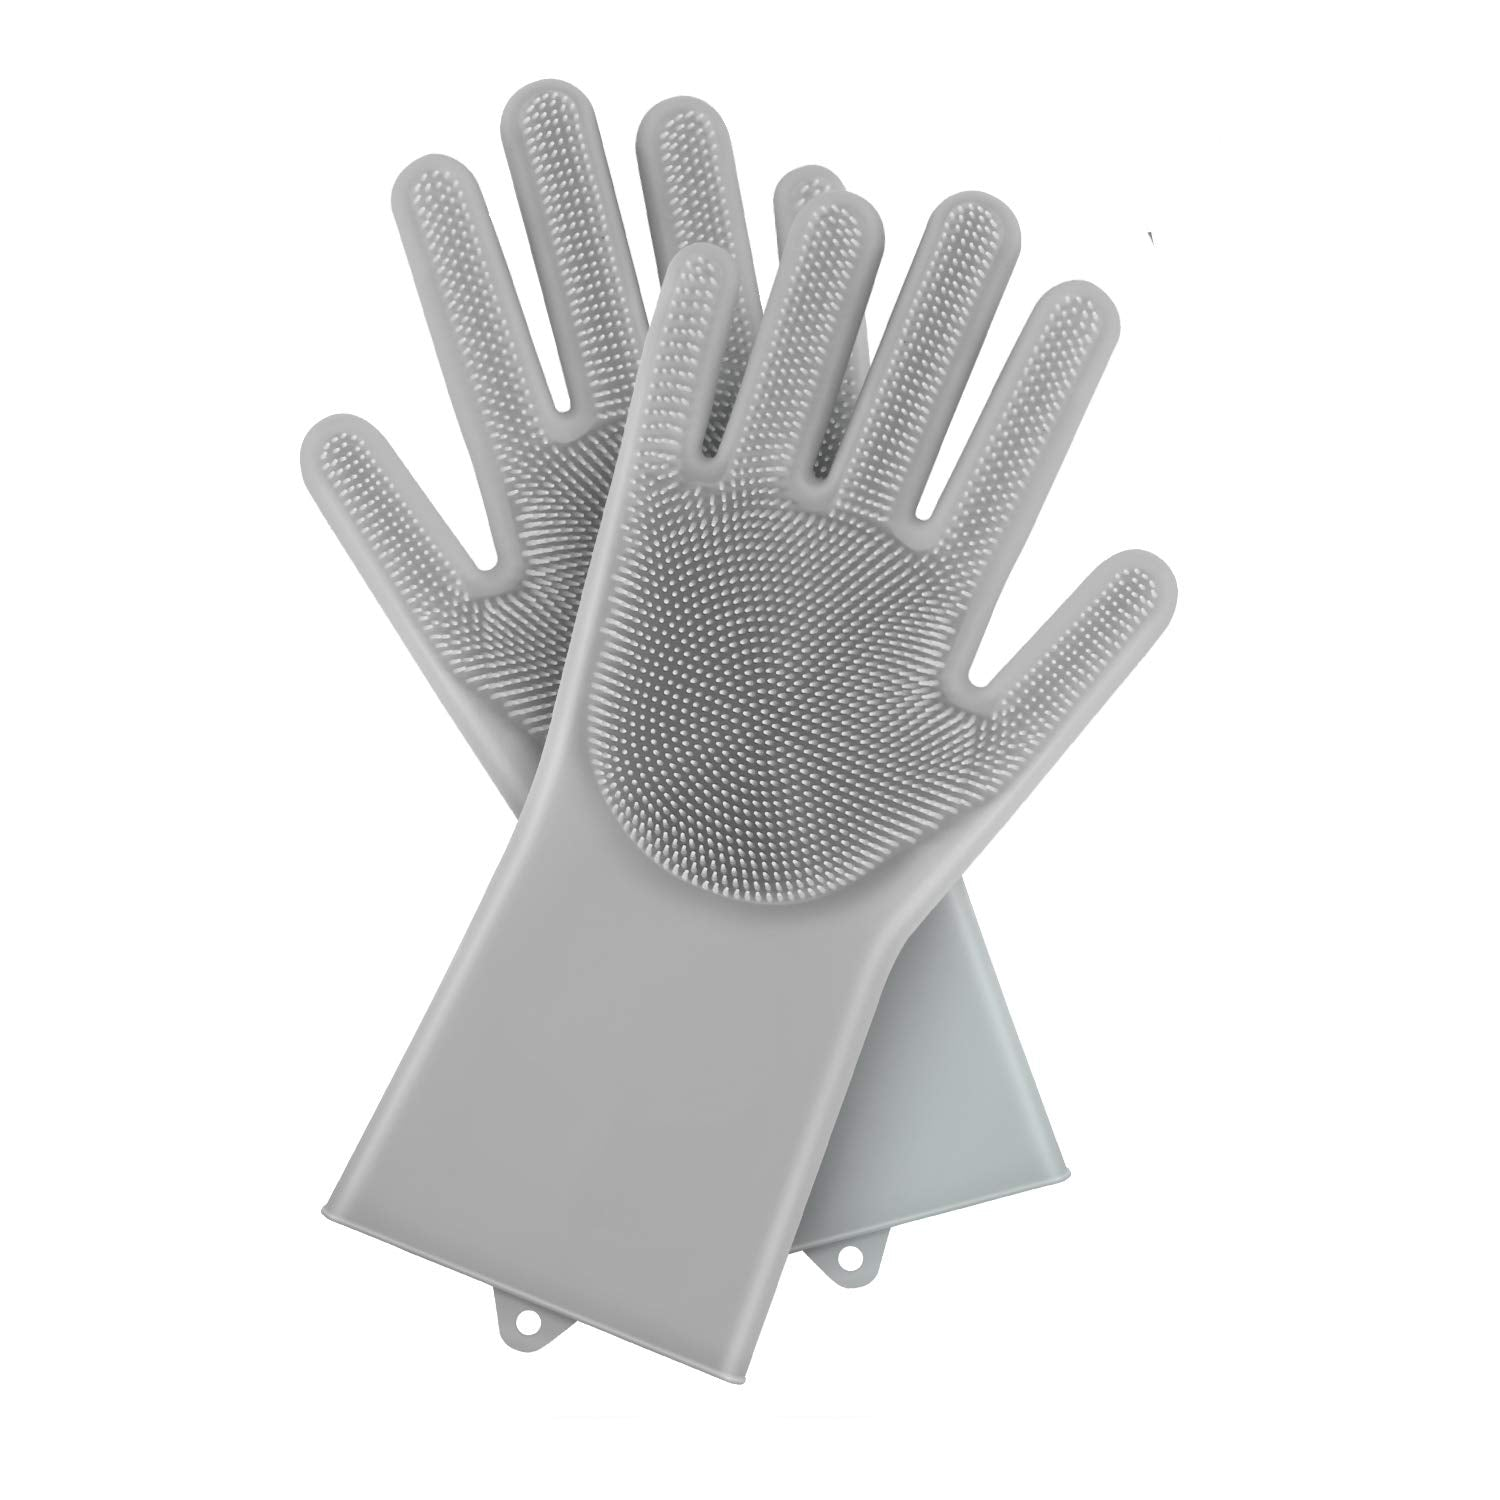 Magic Silicone Dish Washing Gloves (2 Piece)